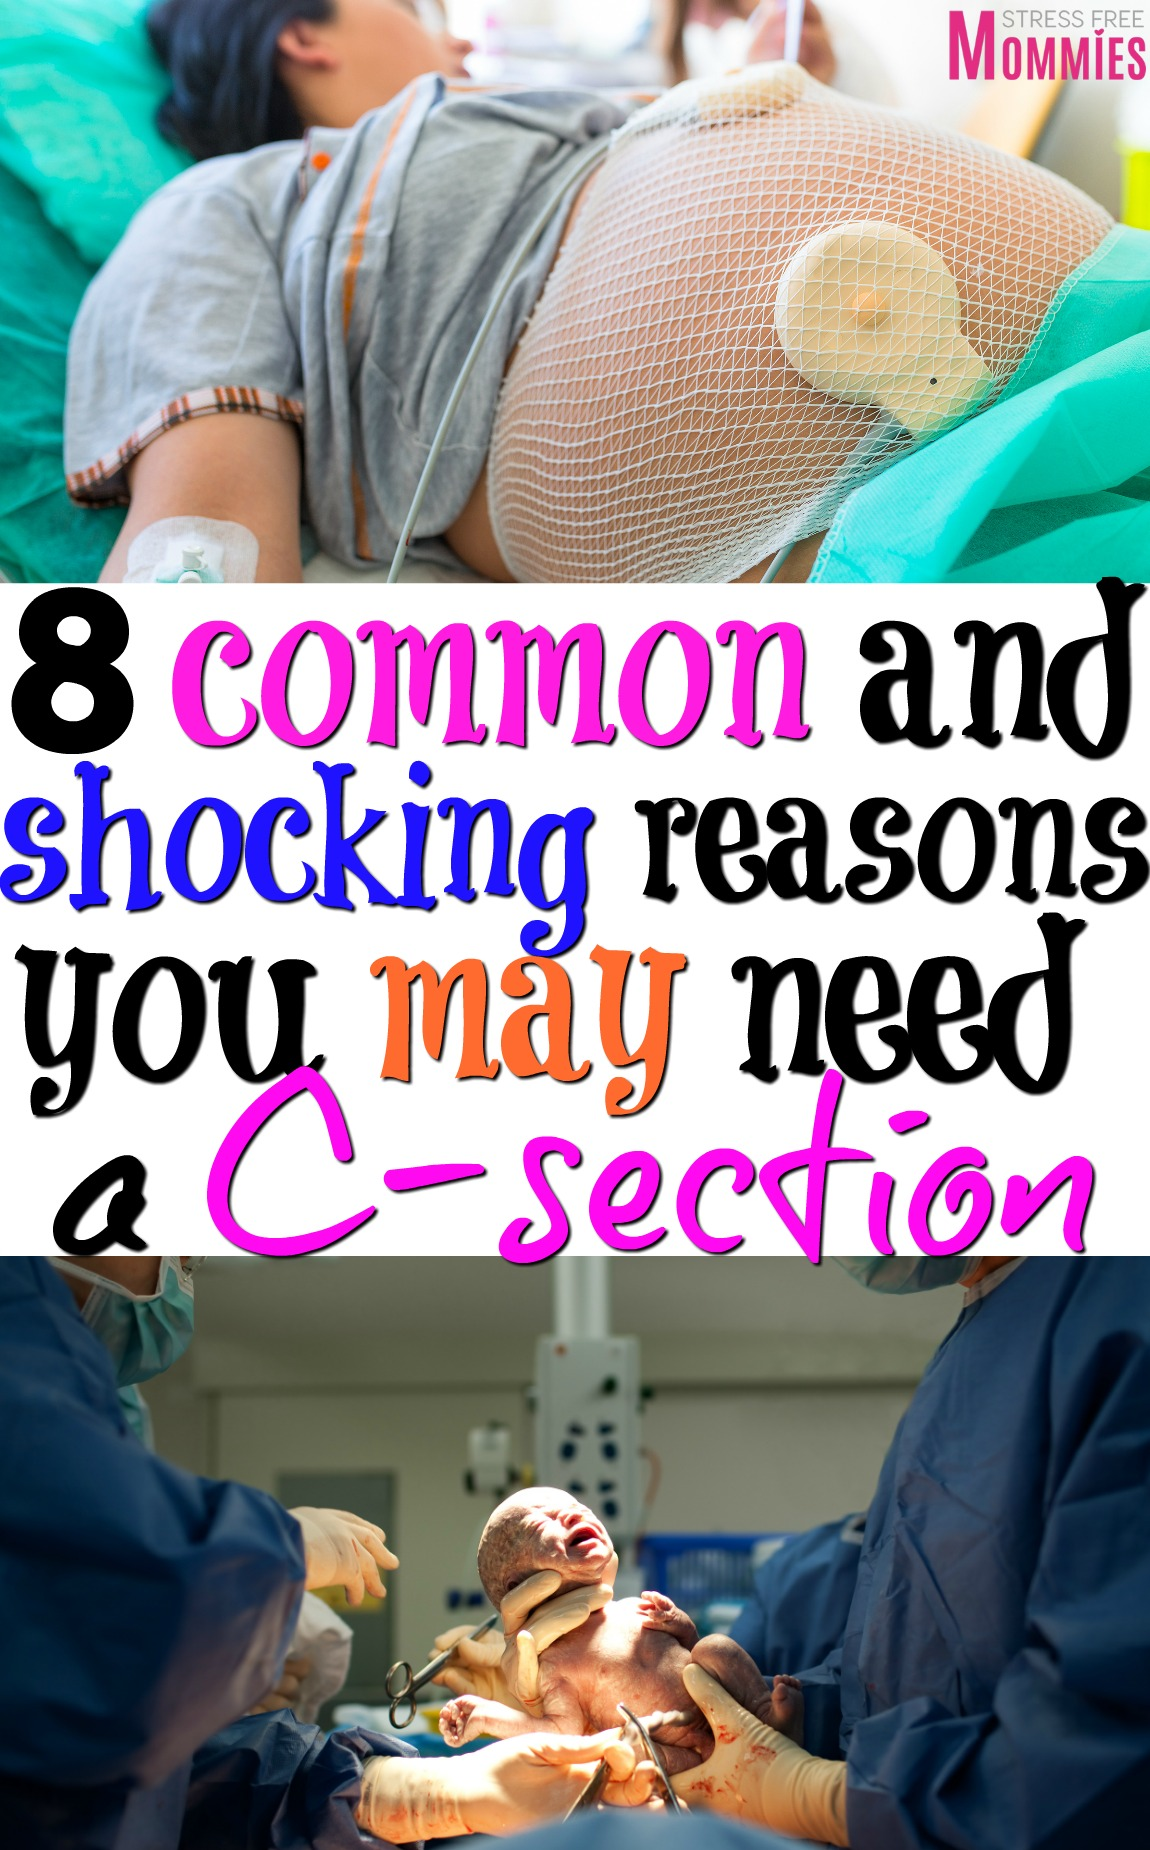 8 common and shocking reasons you may need a C-section